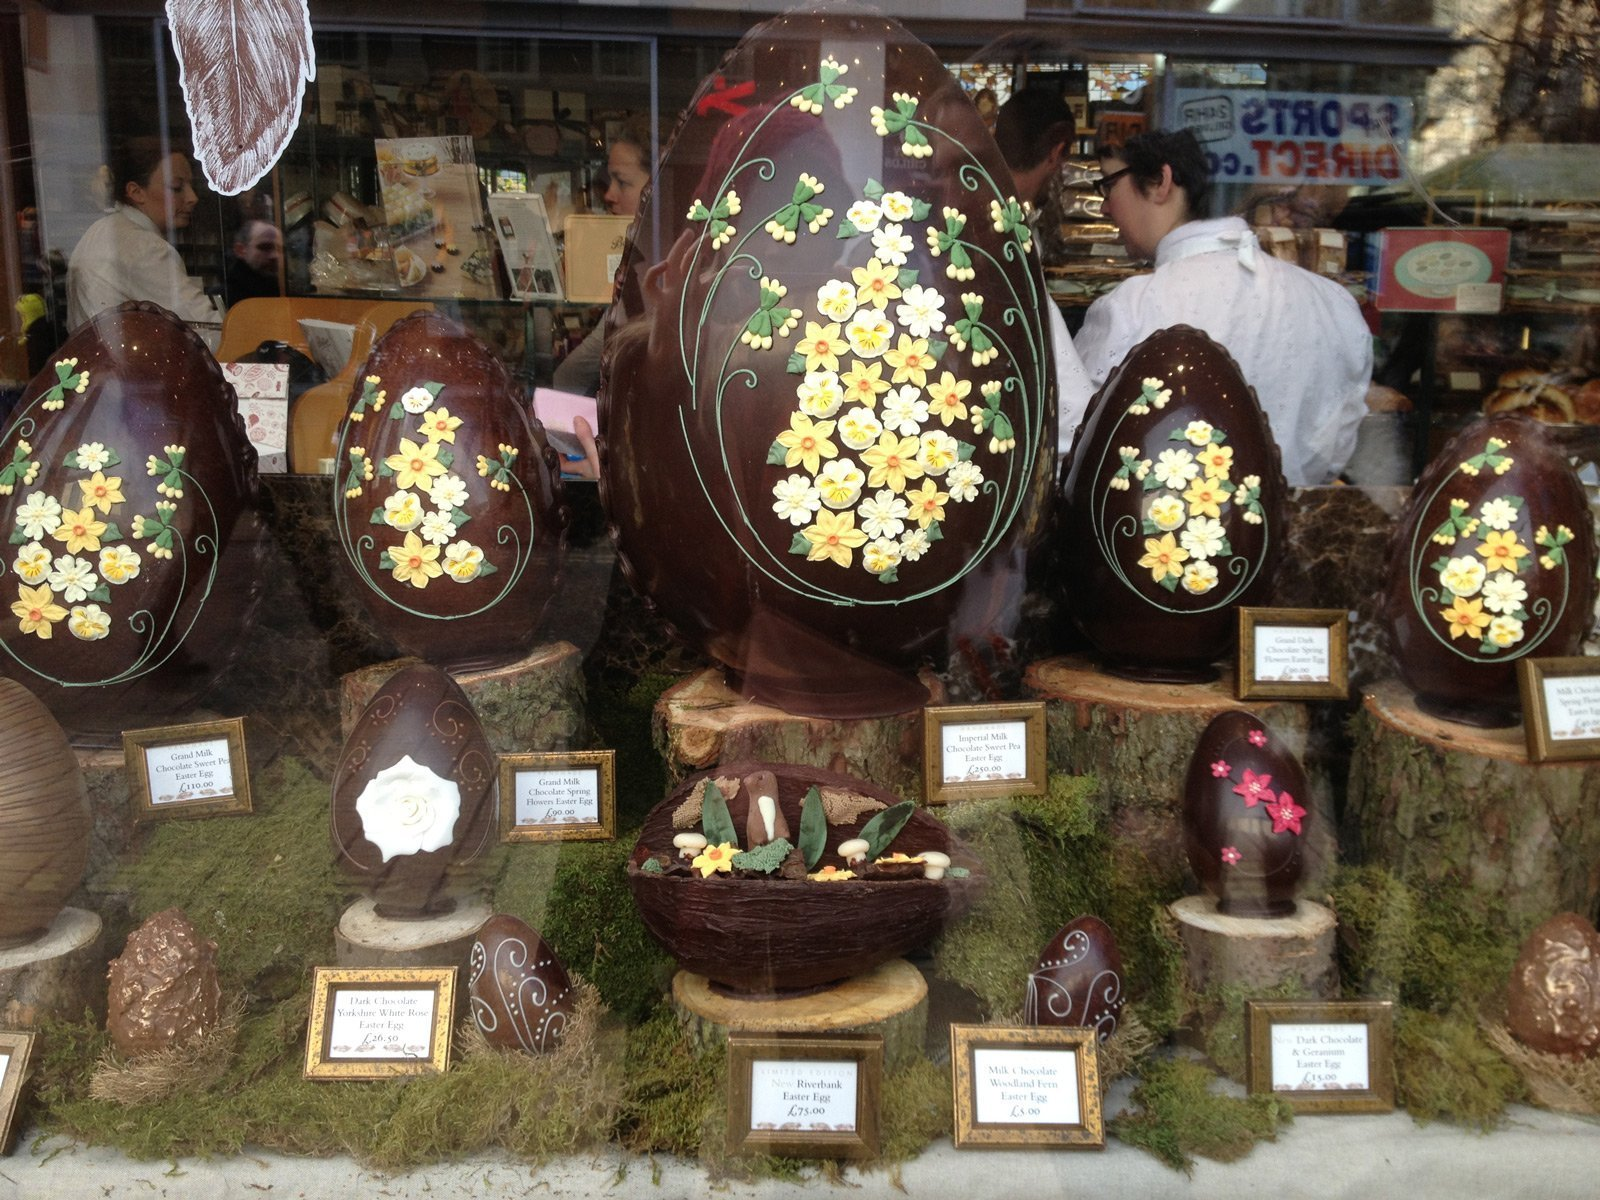 Adorned chocolate eggs for Easter, placed on an artificial moss, is giving the window display the air of the Easter.